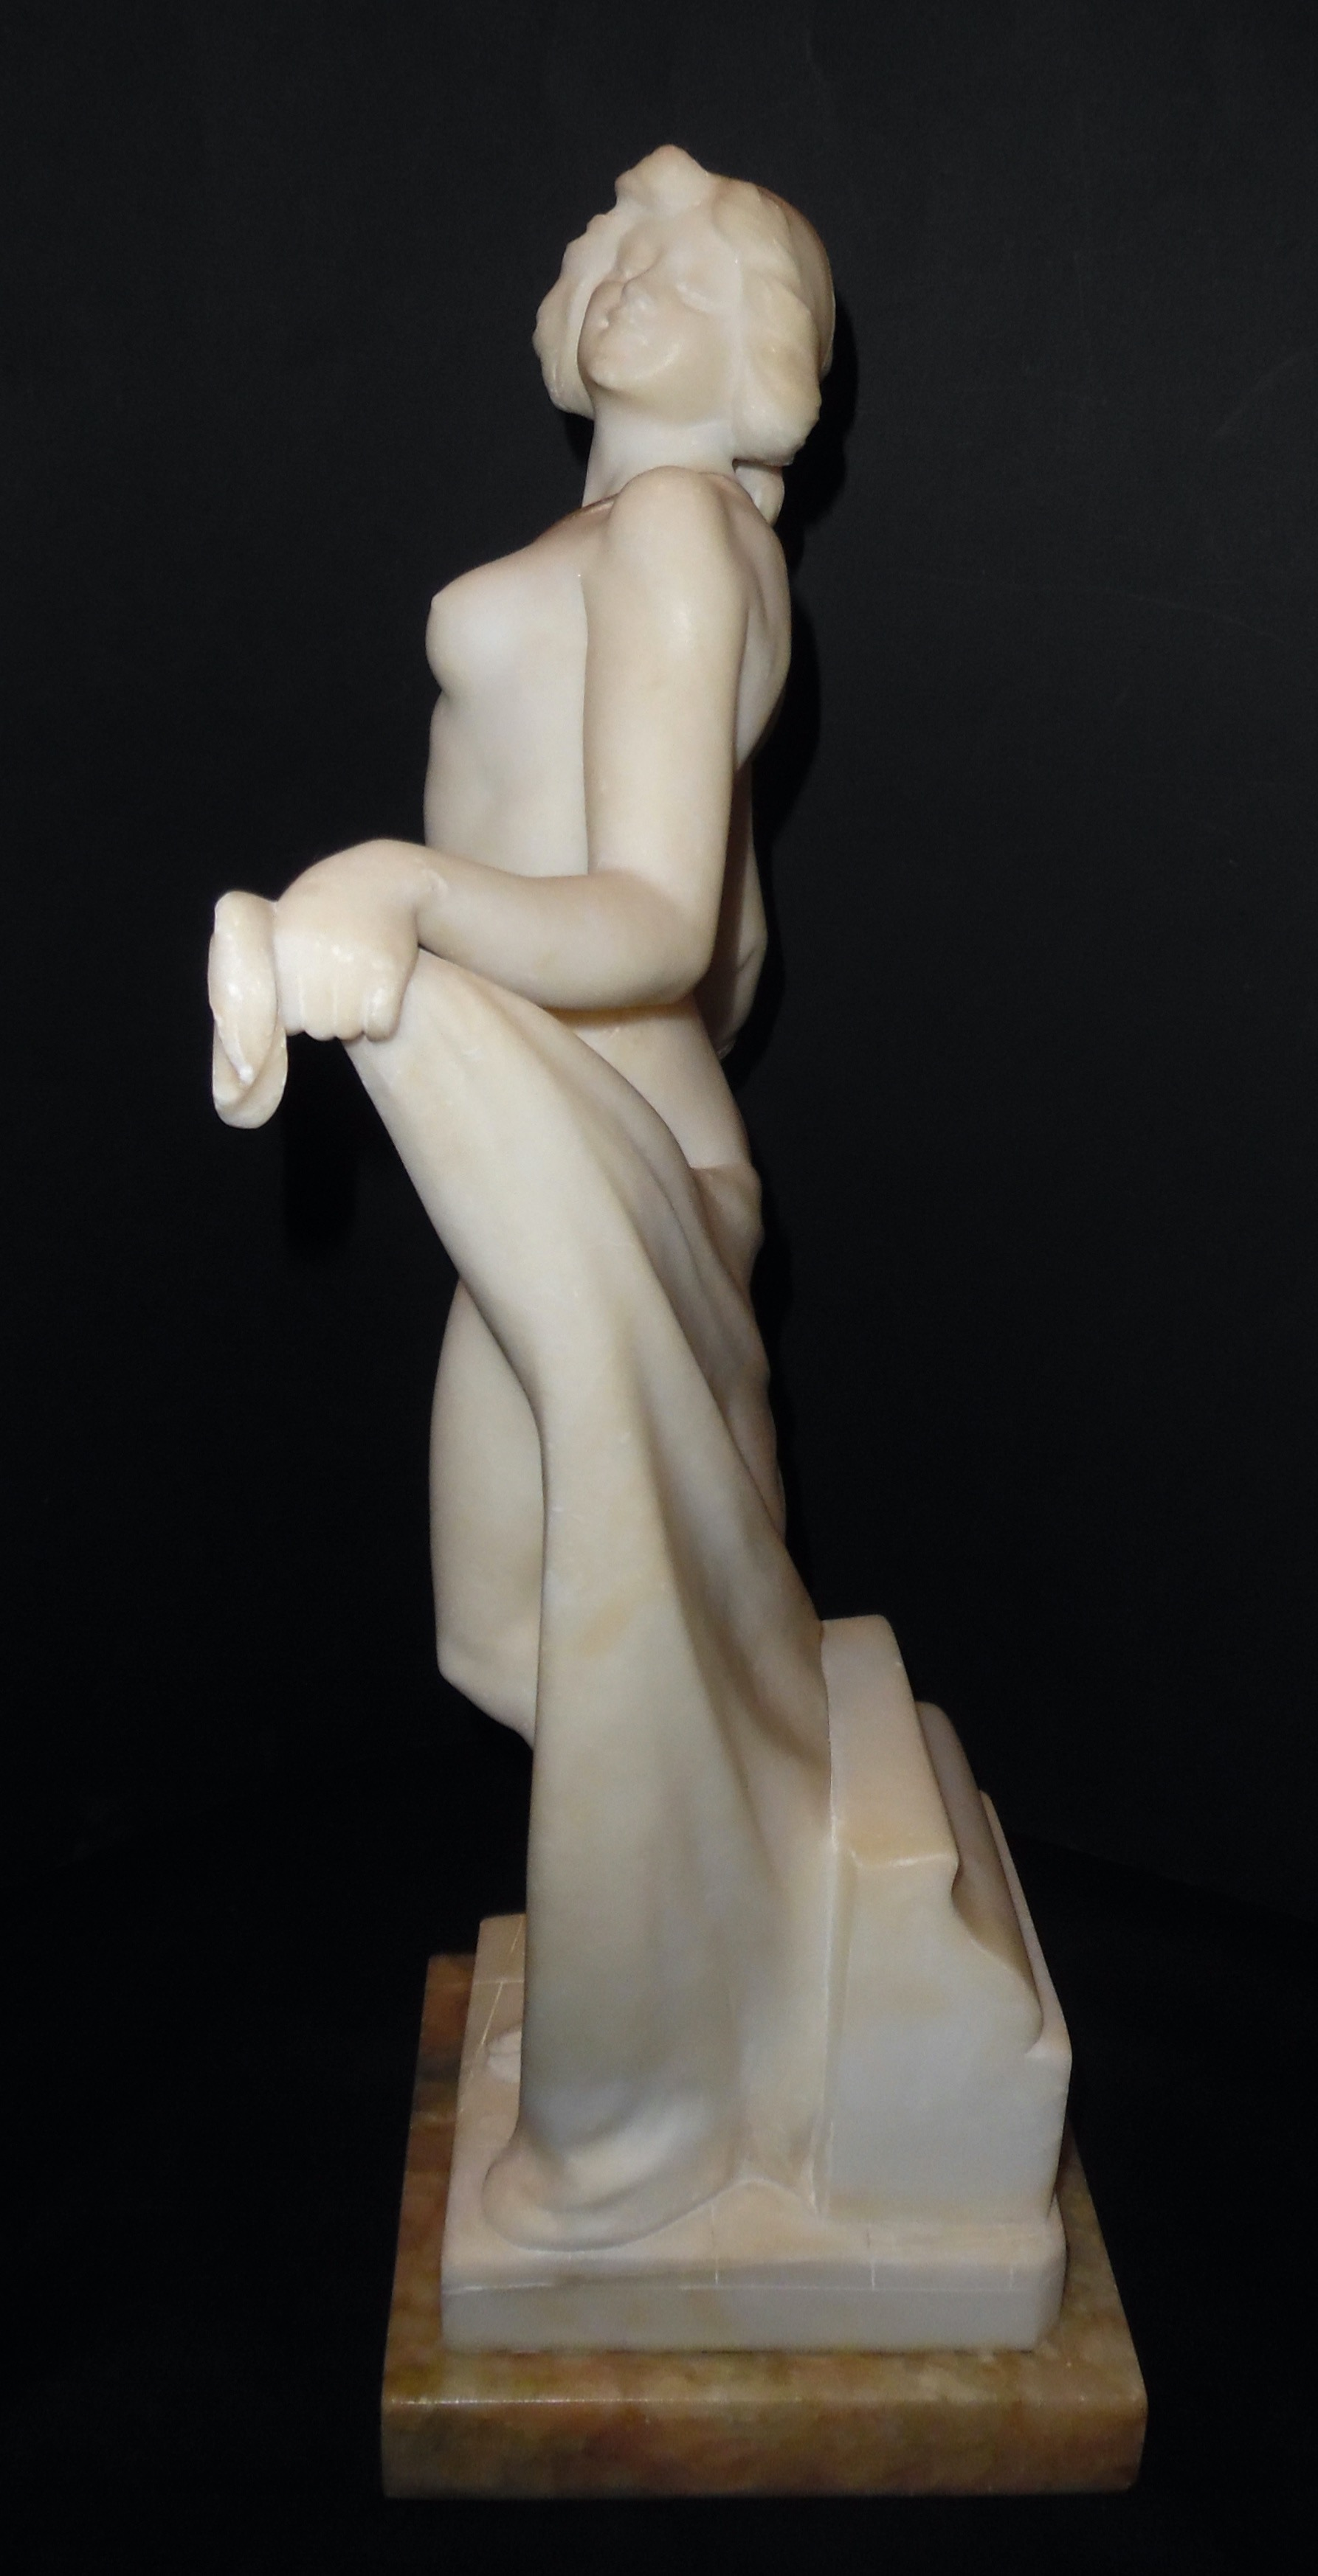 A French alabaster sculpture of a lady